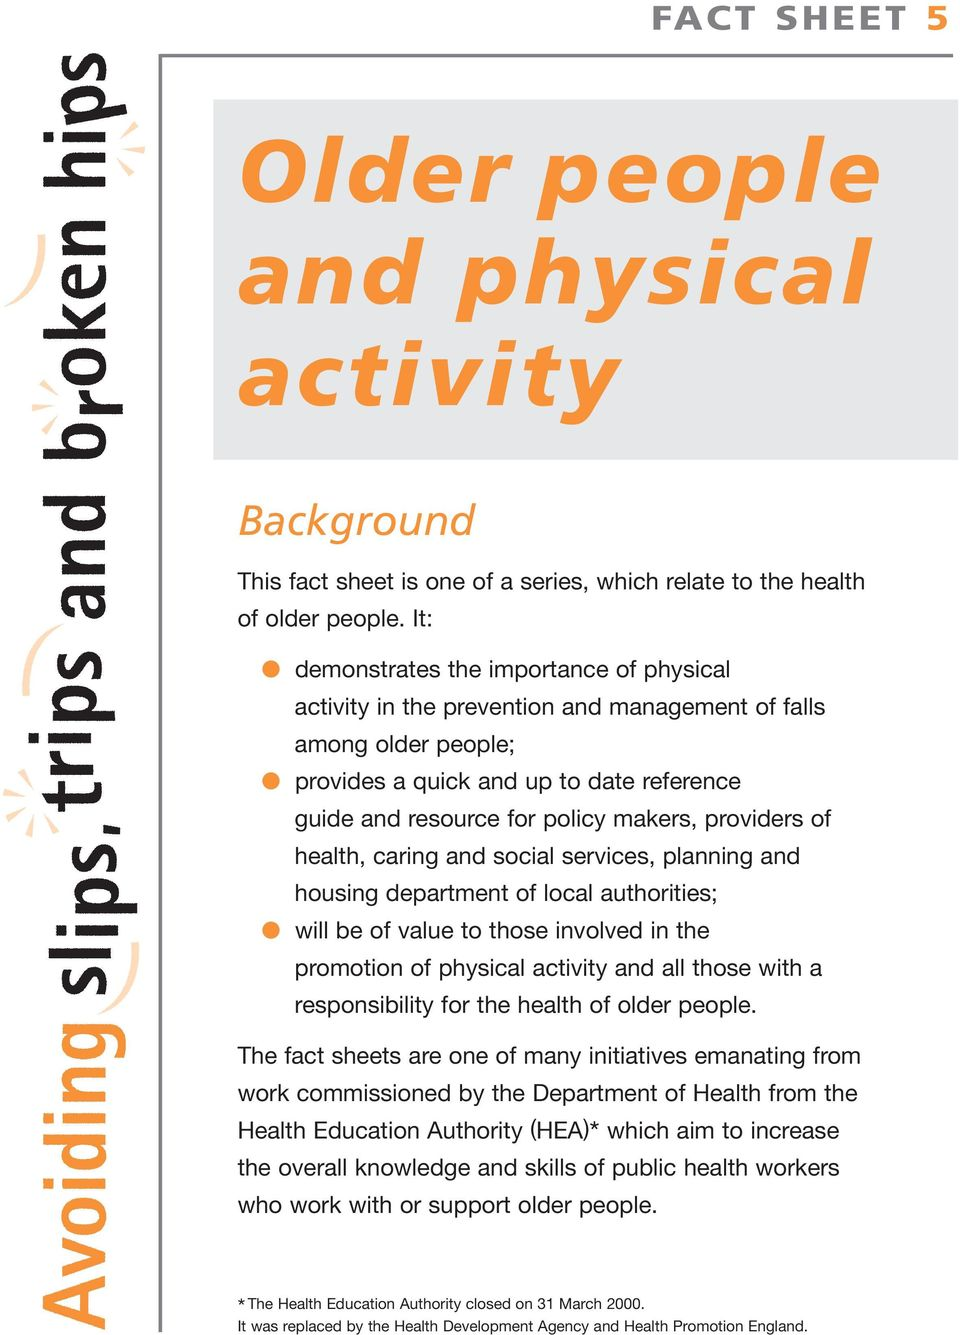 providers of health, caring and social services, planning and housing department of local authorities; will be of value to those involved in the promotion of physical activity and all those with a